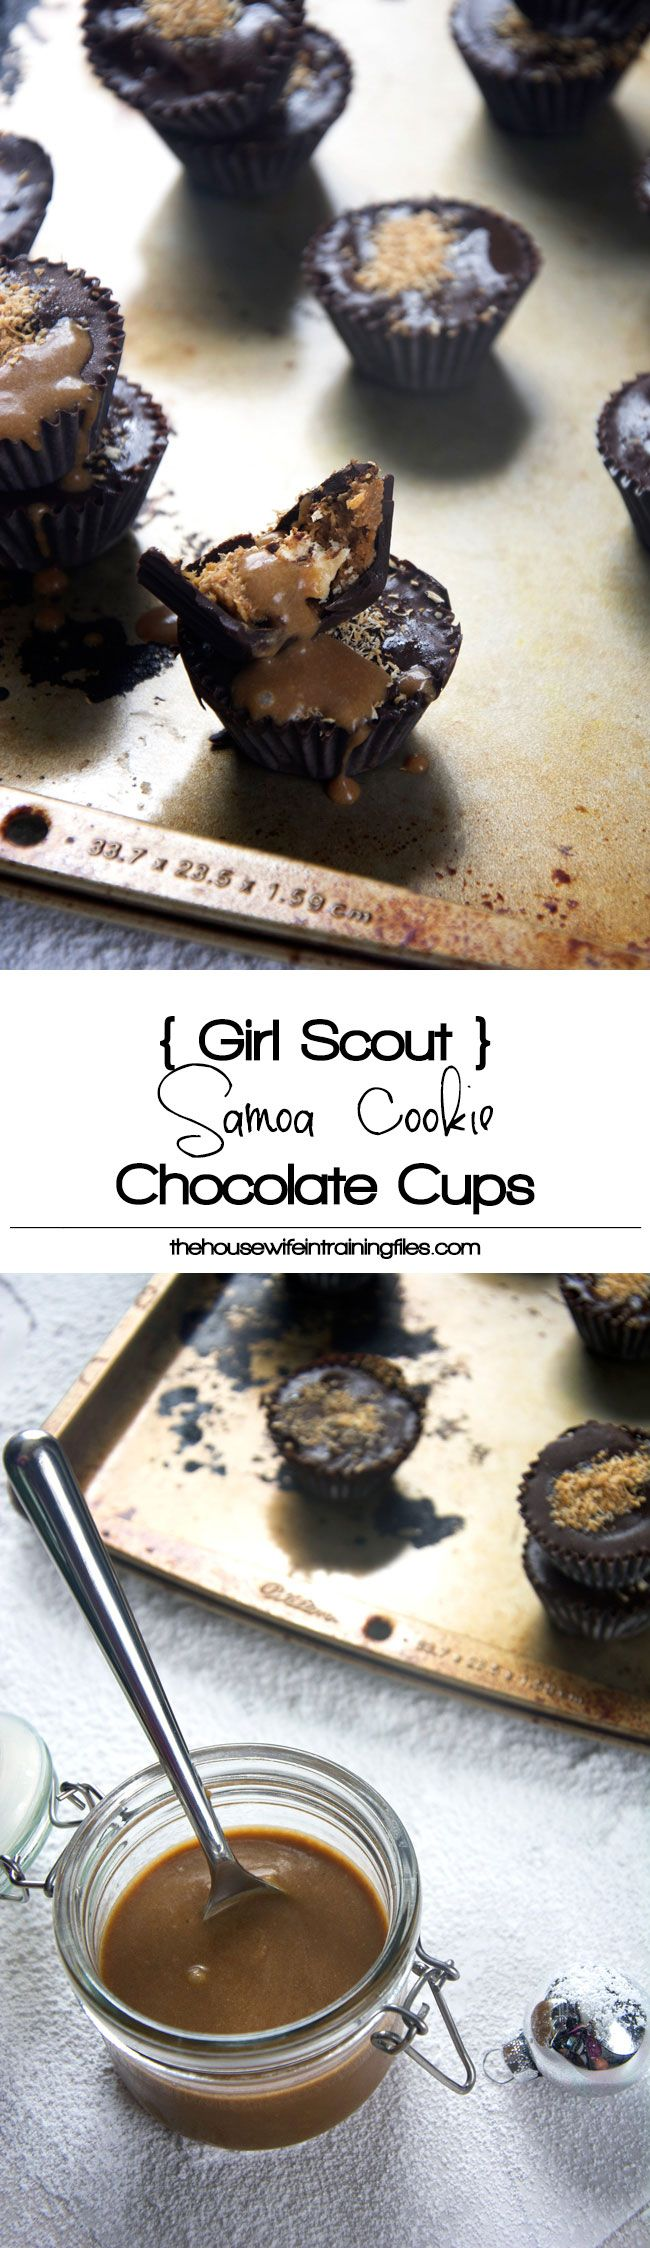 Your dessert table gets spruced up with these Girl Scout Samoa Cookie Chocolate Cups! All the flavors of your favorite girl scout cookie stuffed inside a chocolate cup! #girlscoutcookie #carameldelights #samoa #chocolatecups